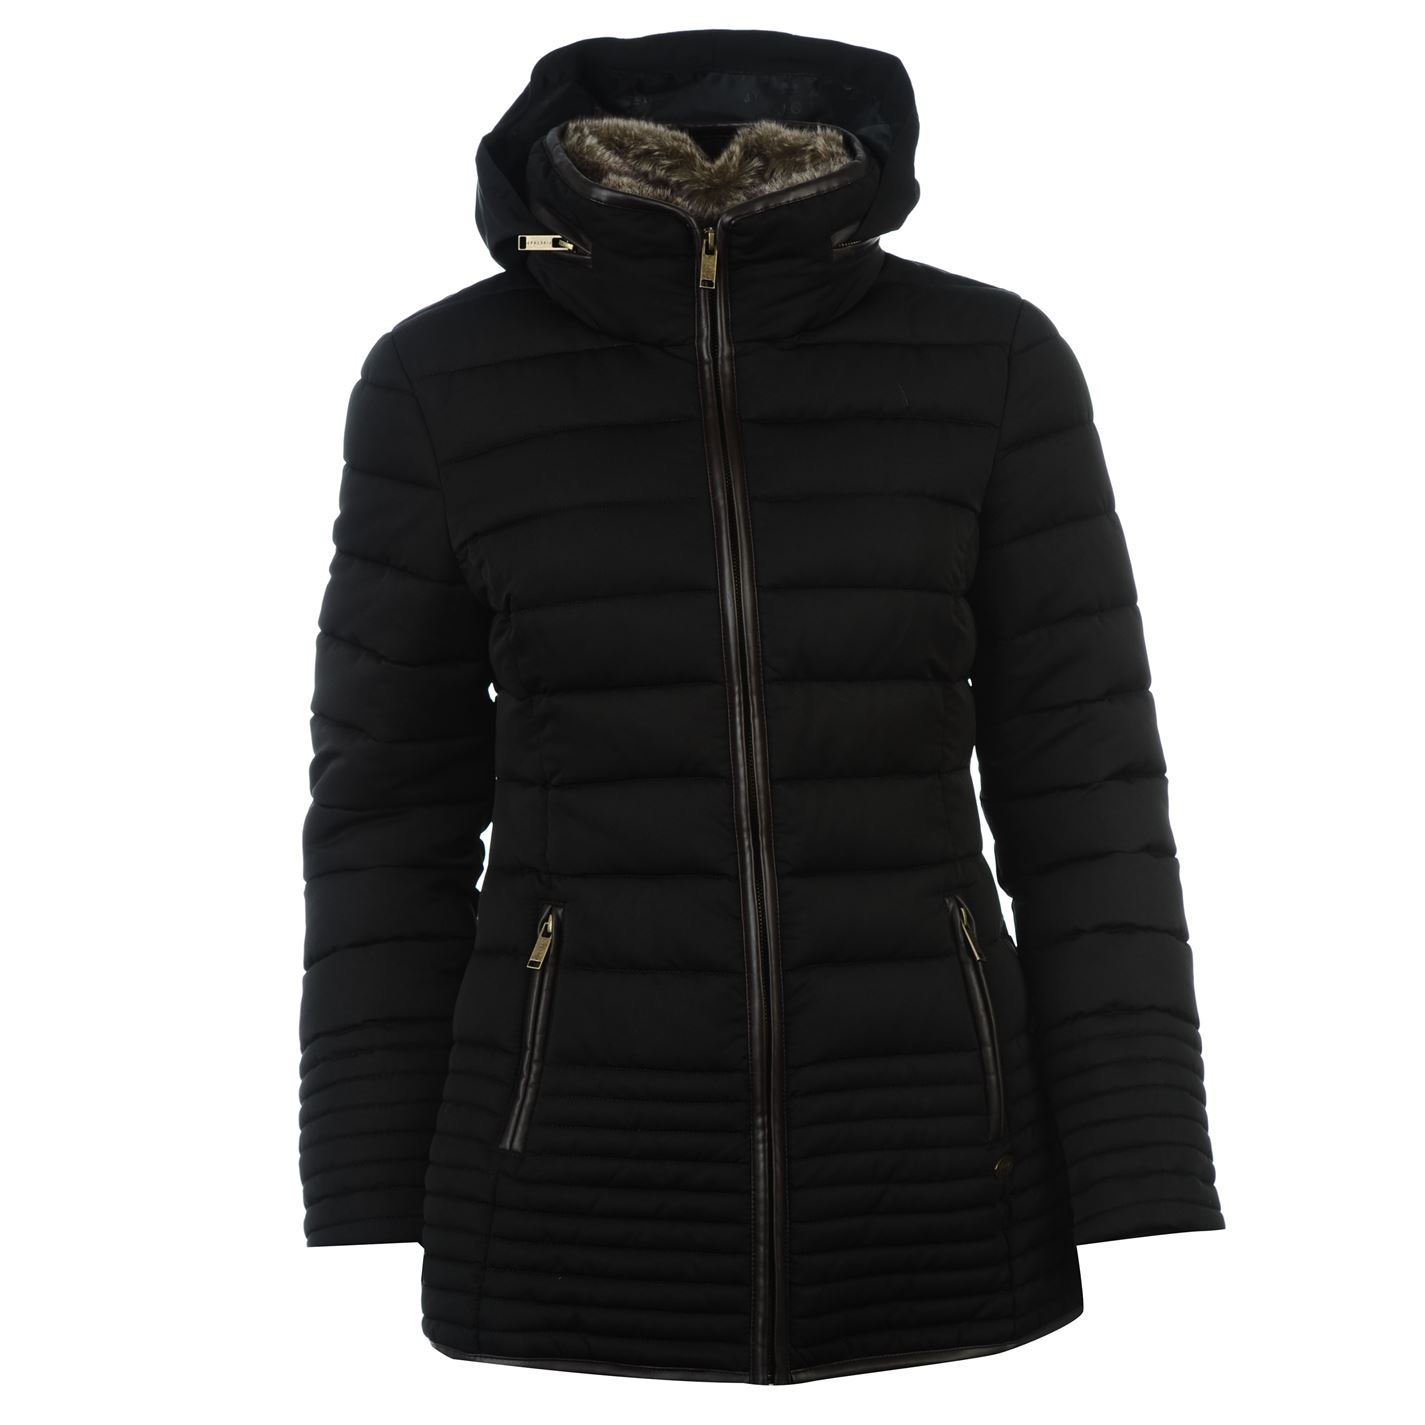 Canada Weather Gear Women's Long Outerwear Jacket with Faux Fur, Bubble Black Cow, 3X. Always delivering on-point style, the steve Madden outerwear collection will be sure to get you through any winter's chill more.